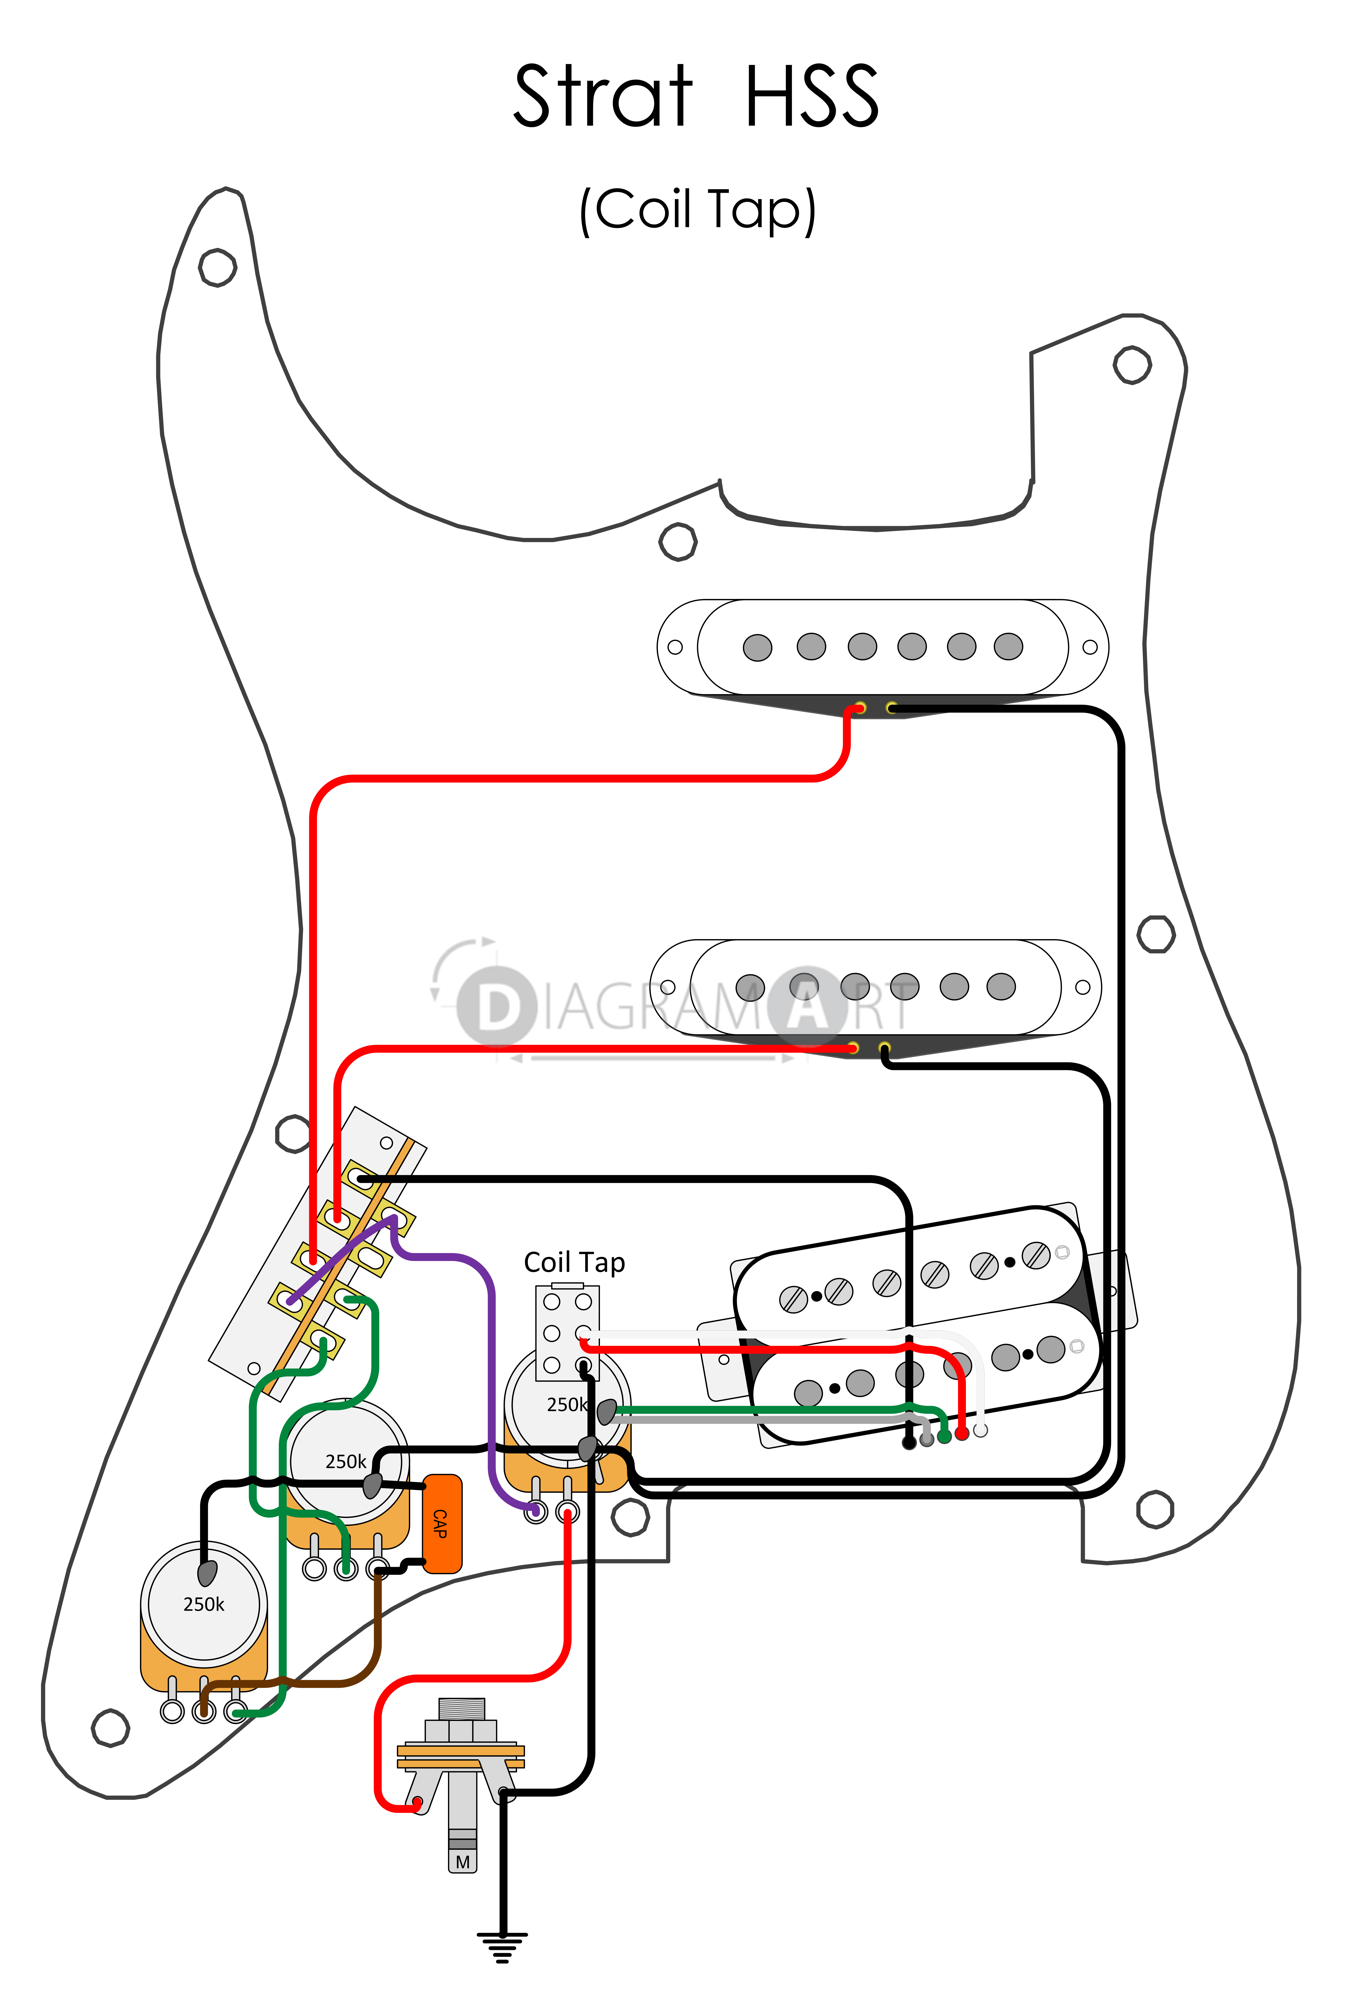 [ZSVE_7041]  Guitar Wiring Diagram Hss - Kenmore Refrigerator Wiring Diagram for Wiring  Diagram Schematics | Wiring Diagram Guitar |  | Wiring Diagram Schematics